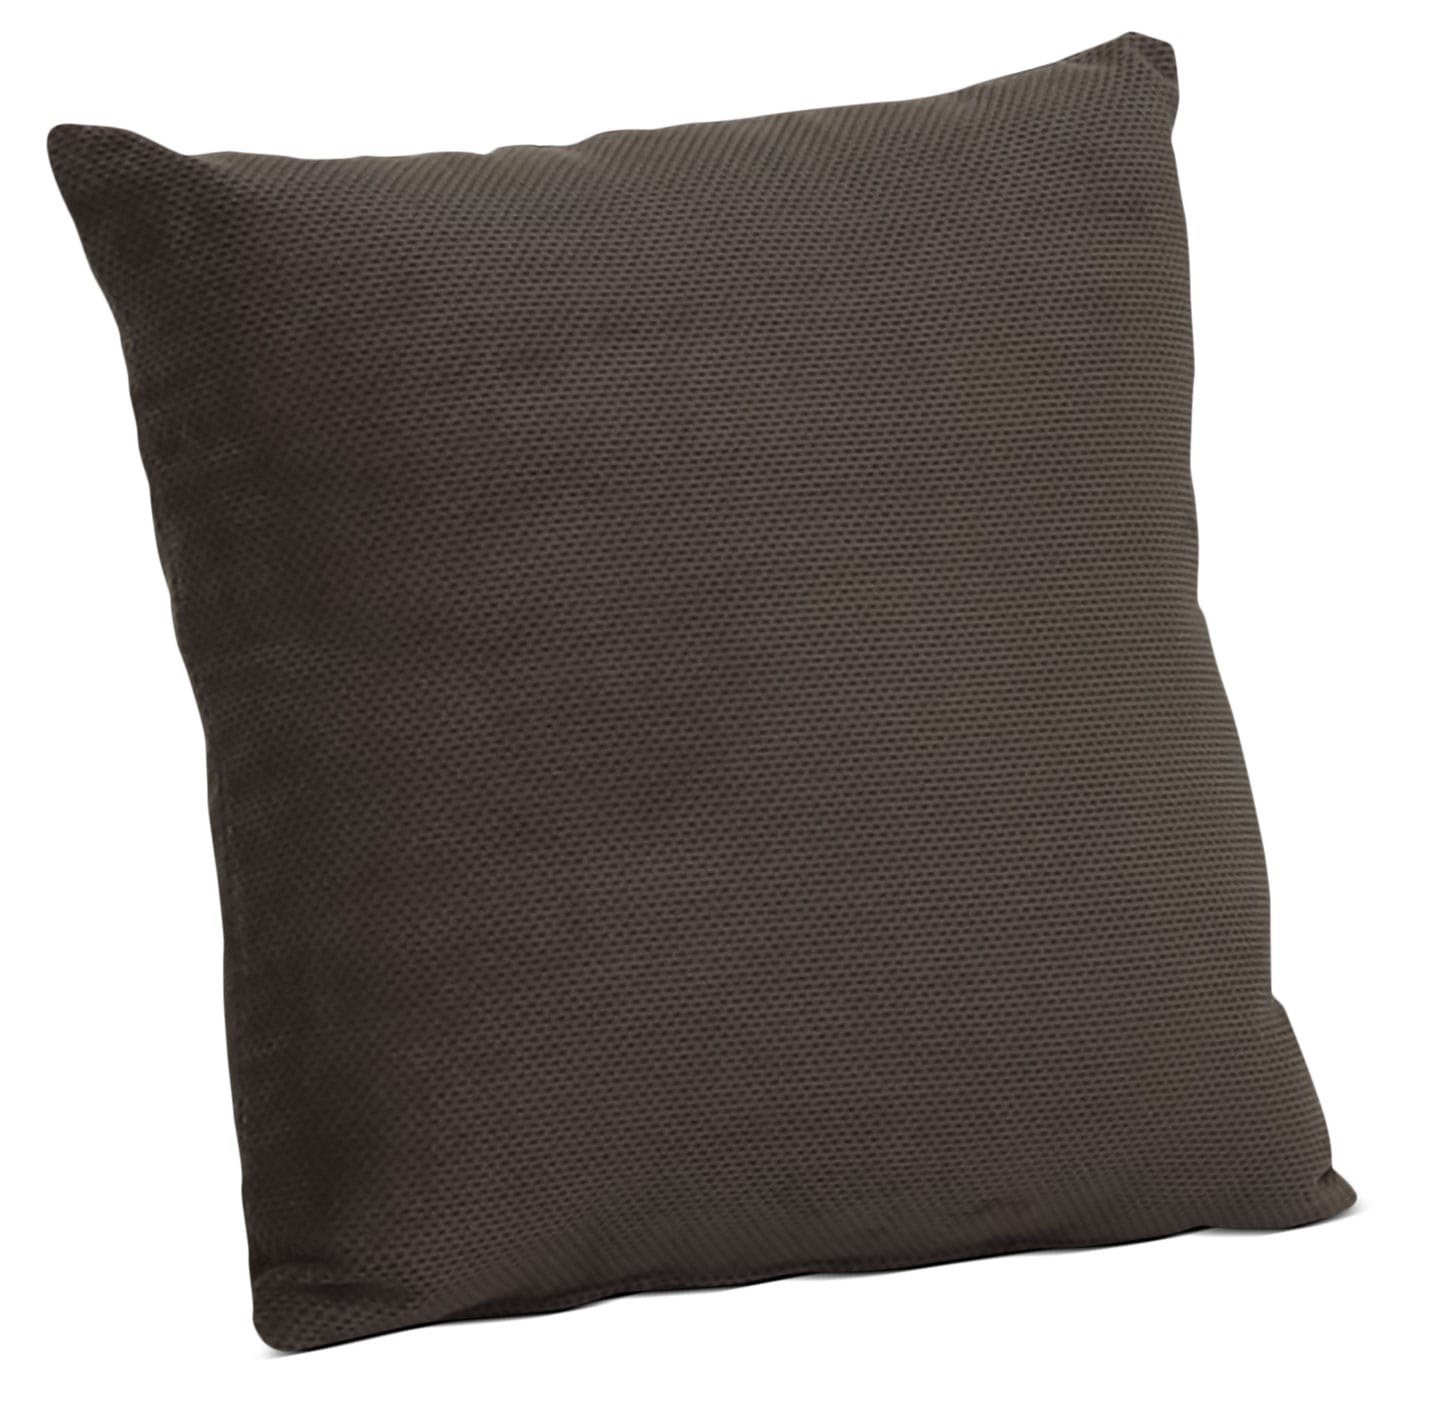 Designed2B Textured Chenille Accent Throw Pillow – Plush Chocolate